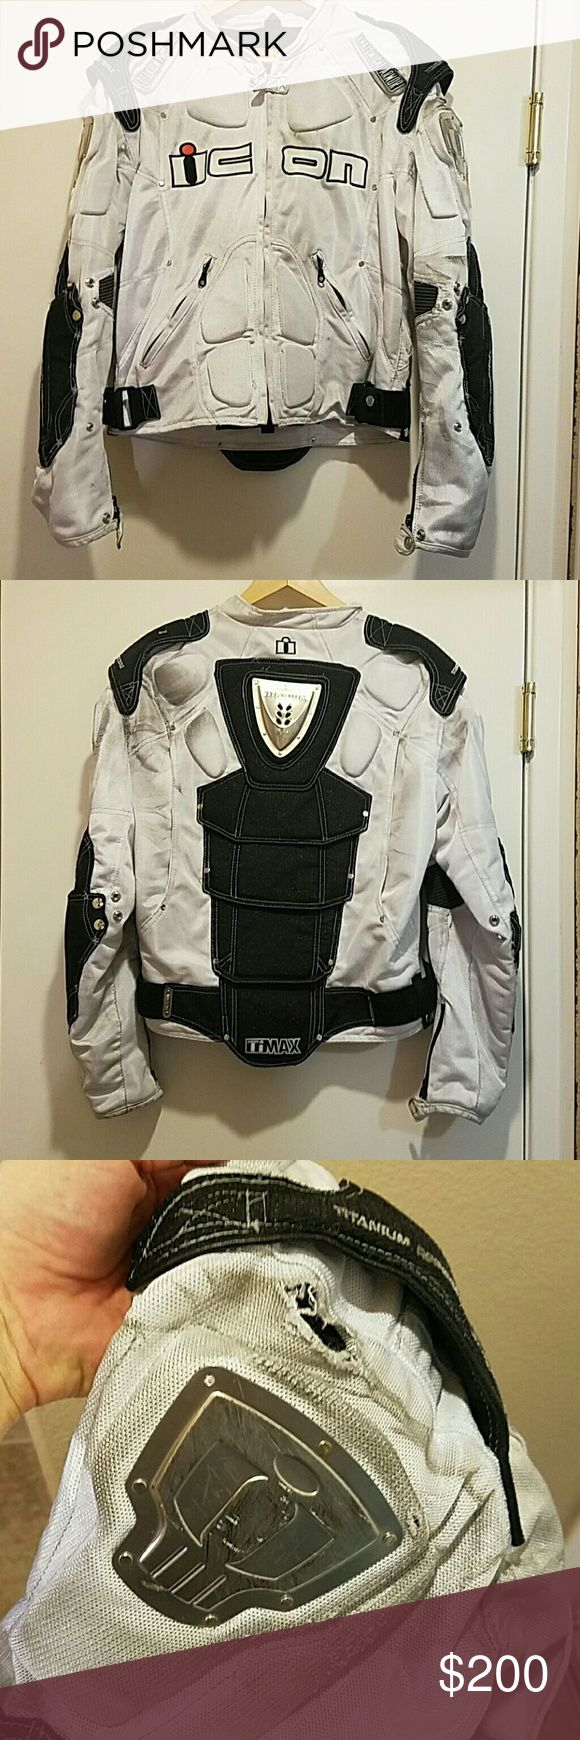 Icon motorcycle jacket Breathable icon motorcycle jacket torn on one shoulder. ICON Jackets & Coats Performance Jackets